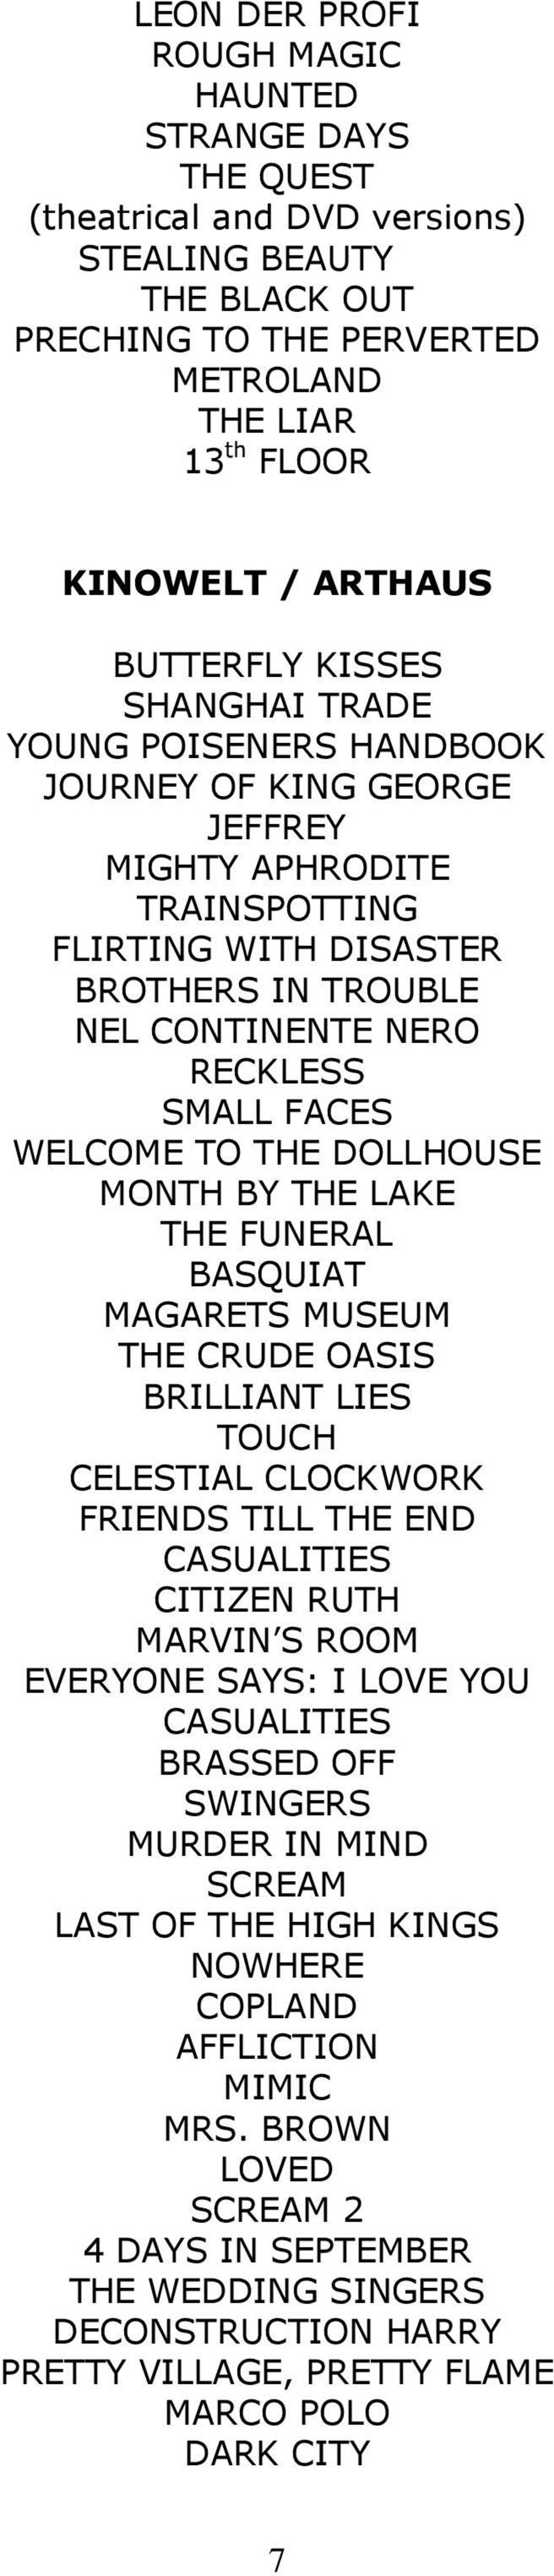 MONTH BY THE LAKE THE FUNERAL BASQUIAT MAGARETS MUSEUM THE CRUDE OASIS BRILLIANT LIES TOUCH CELESTIAL CLOCKWORK FRIENDS TILL THE END CASUALITIES CITIZEN RUTH MARVIN S ROOM EVERYONE SAYS: I LOVE YOU